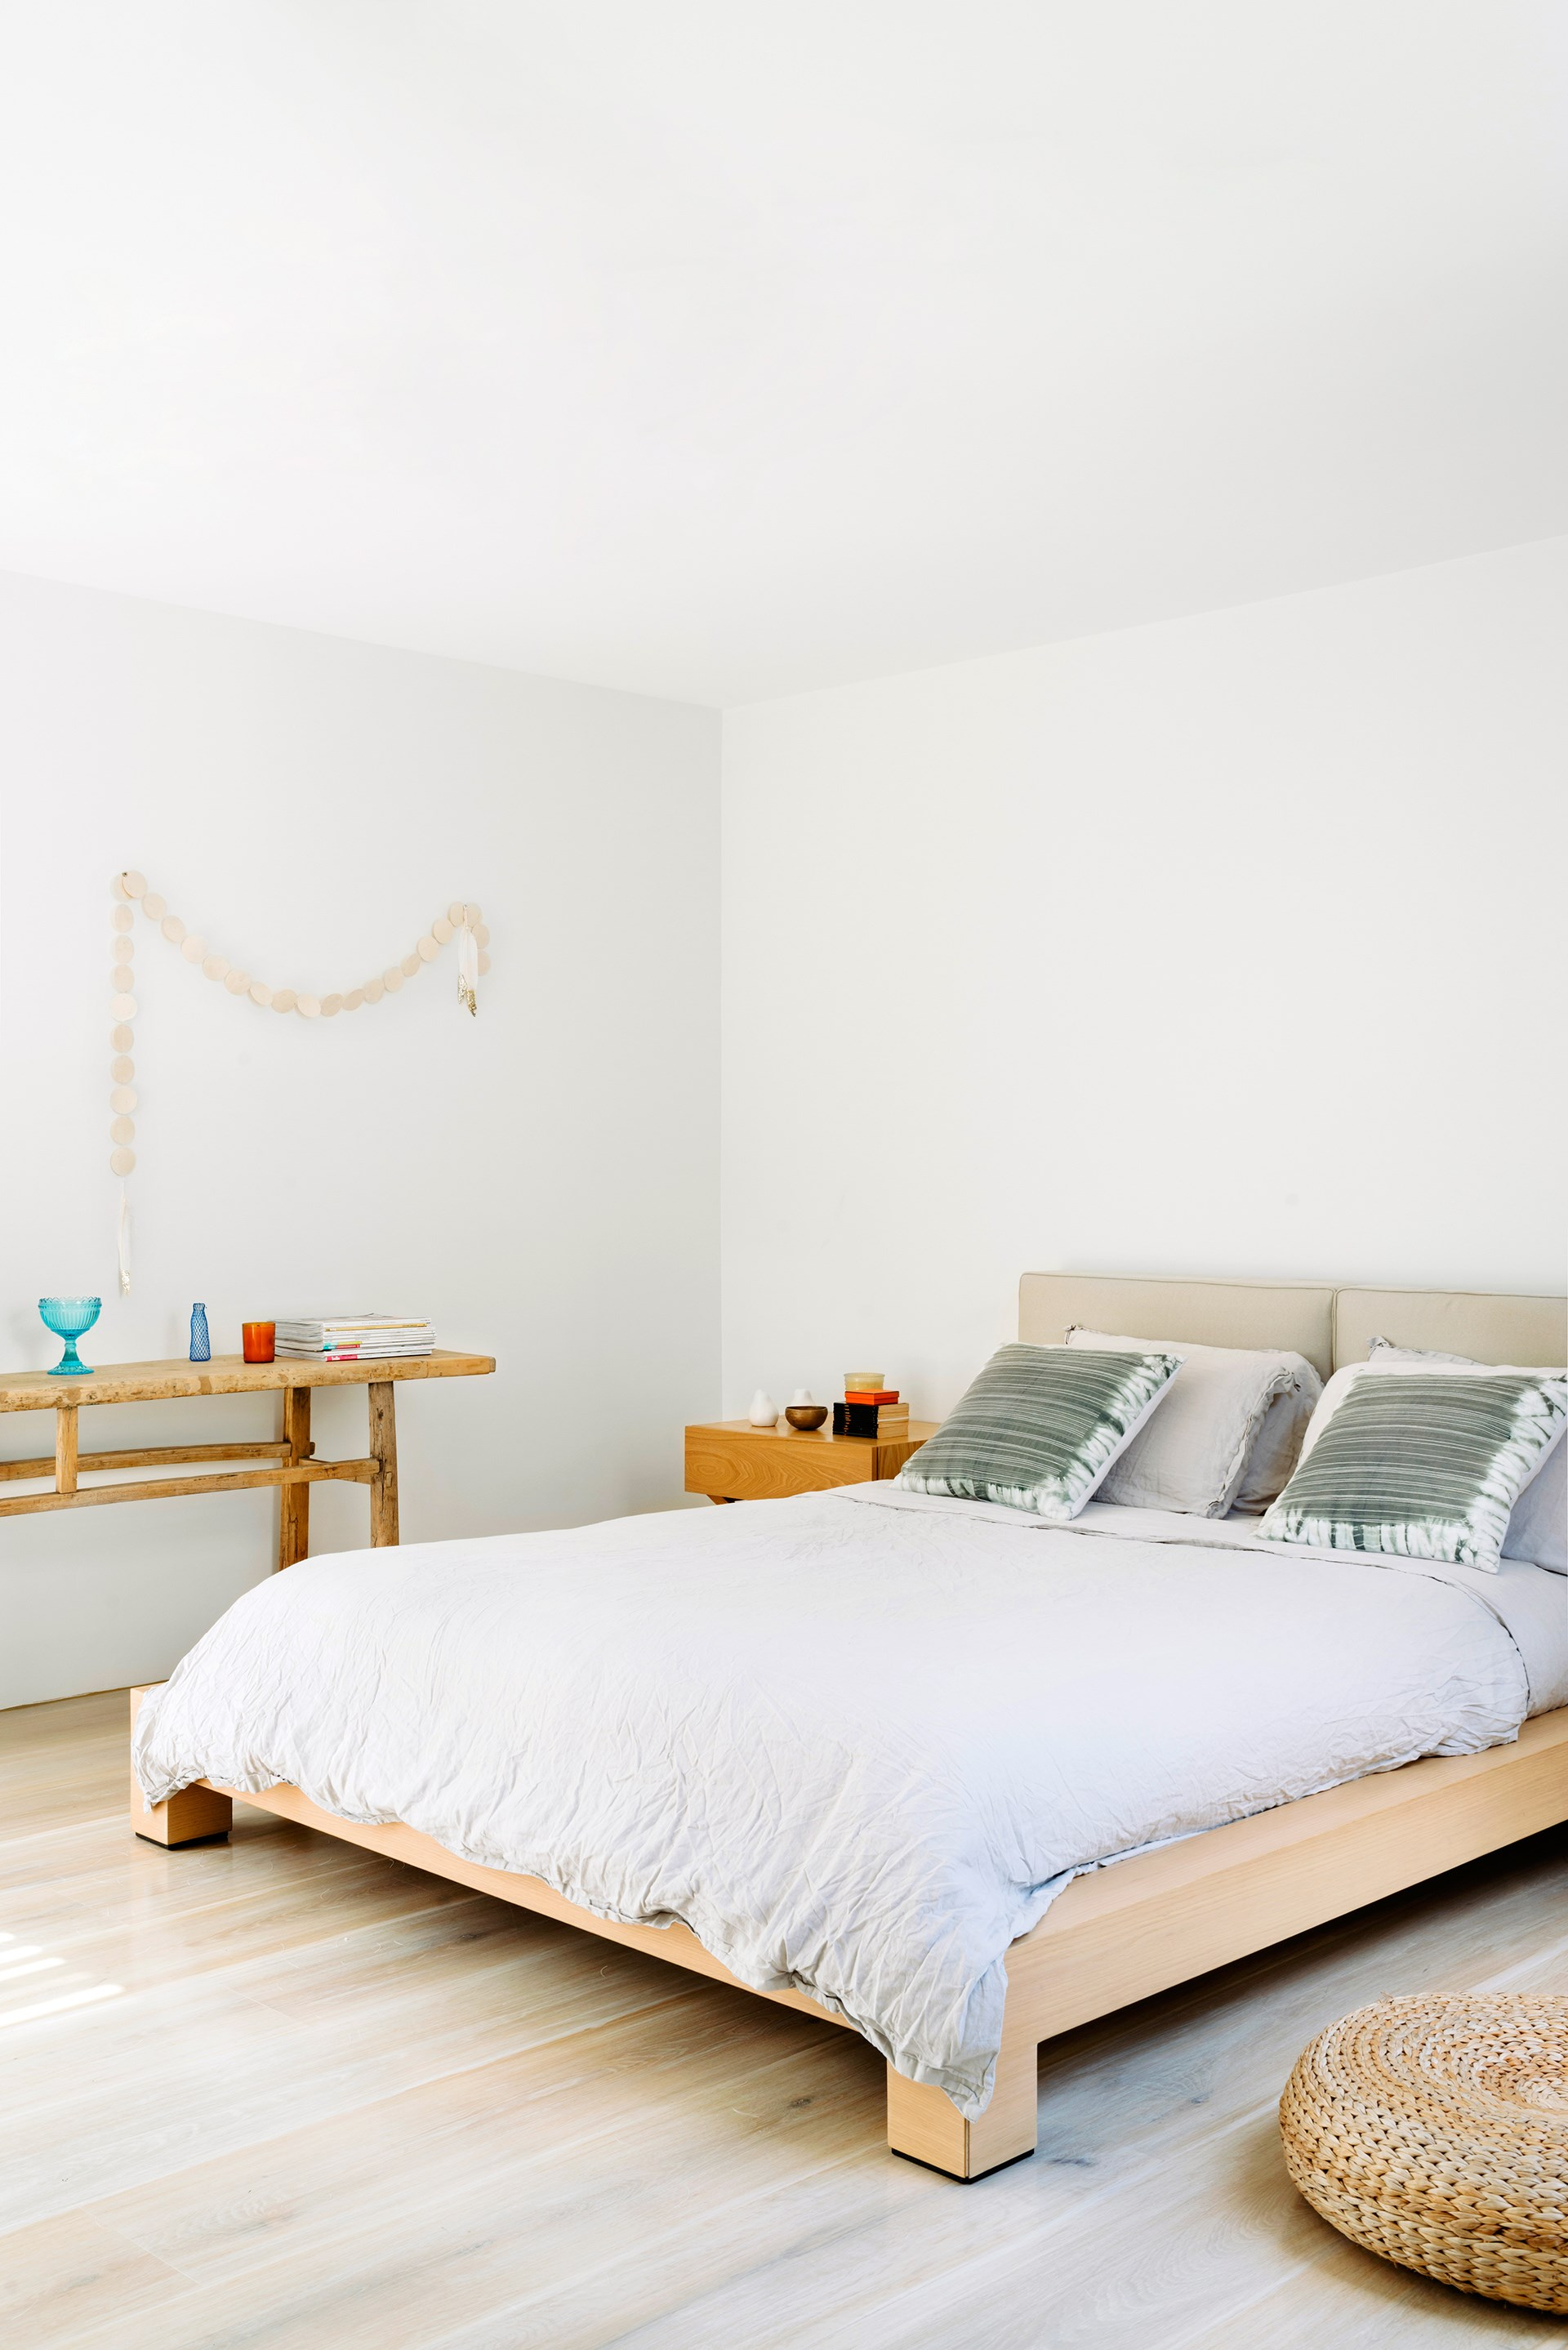 "[This Scandi-style terrace house](http://www.homestolove.com.au/scandi-style-terrace-house-with-space-to-spare-1669/|target=""_blank"") has space to spare. Soft textiles and shades of white set up a cloud-like haven in the couple's main bedroom. Console from [Orson & Blake](http://www.orsonandblake.com.au/